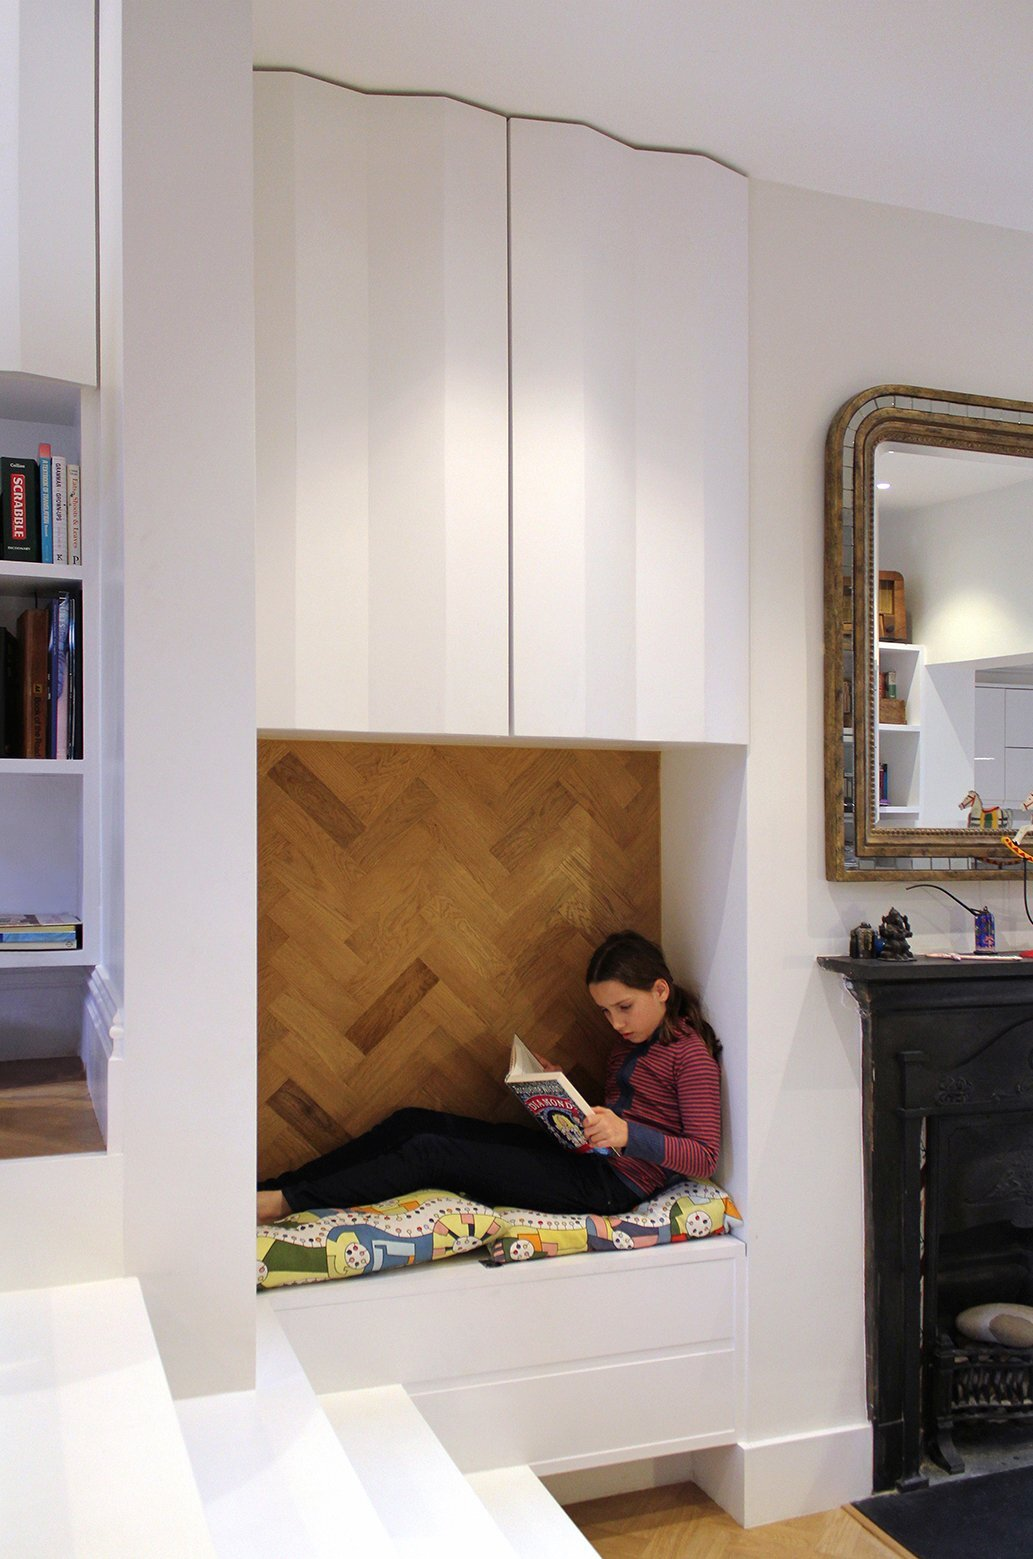 Small House - Zminkowska de Boise Architects - London - Reading Nook - Humble Homes